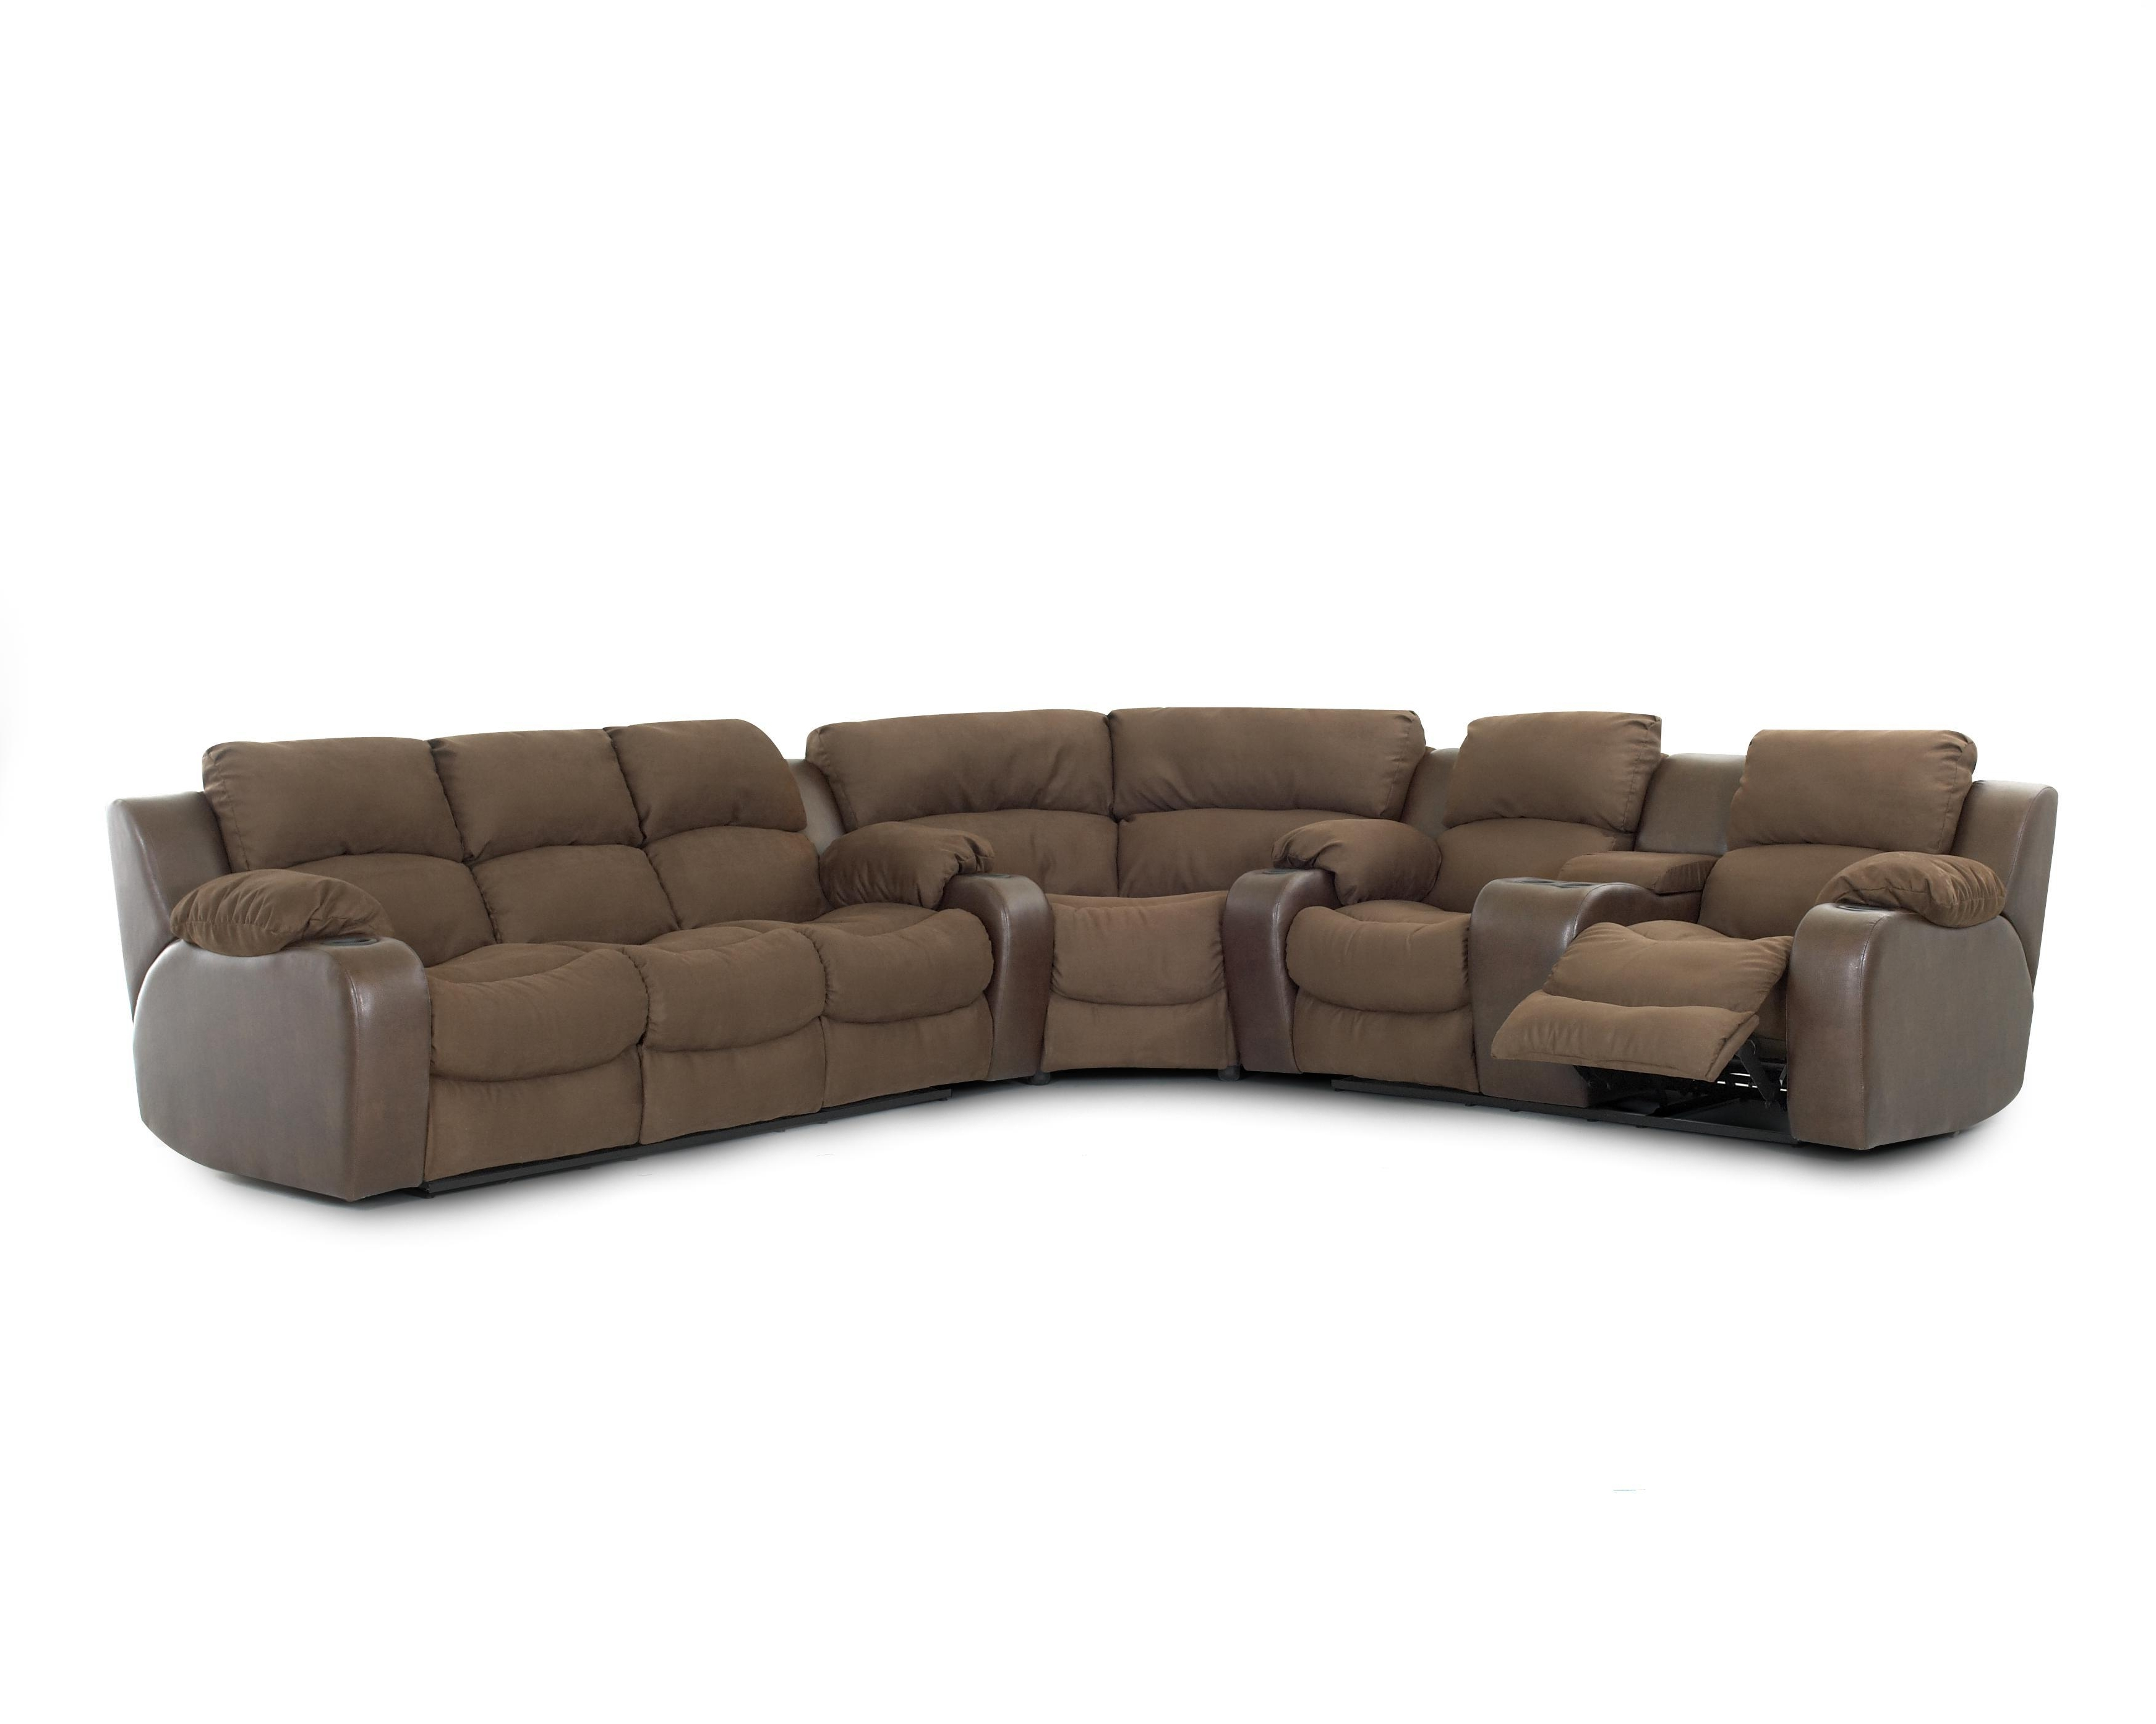 Sectional Sofas With Consoles Inside 2019 Sofas : L Shaped Couch Modular Couch Modular Sofa Grey Reclining (View 3 of 20)